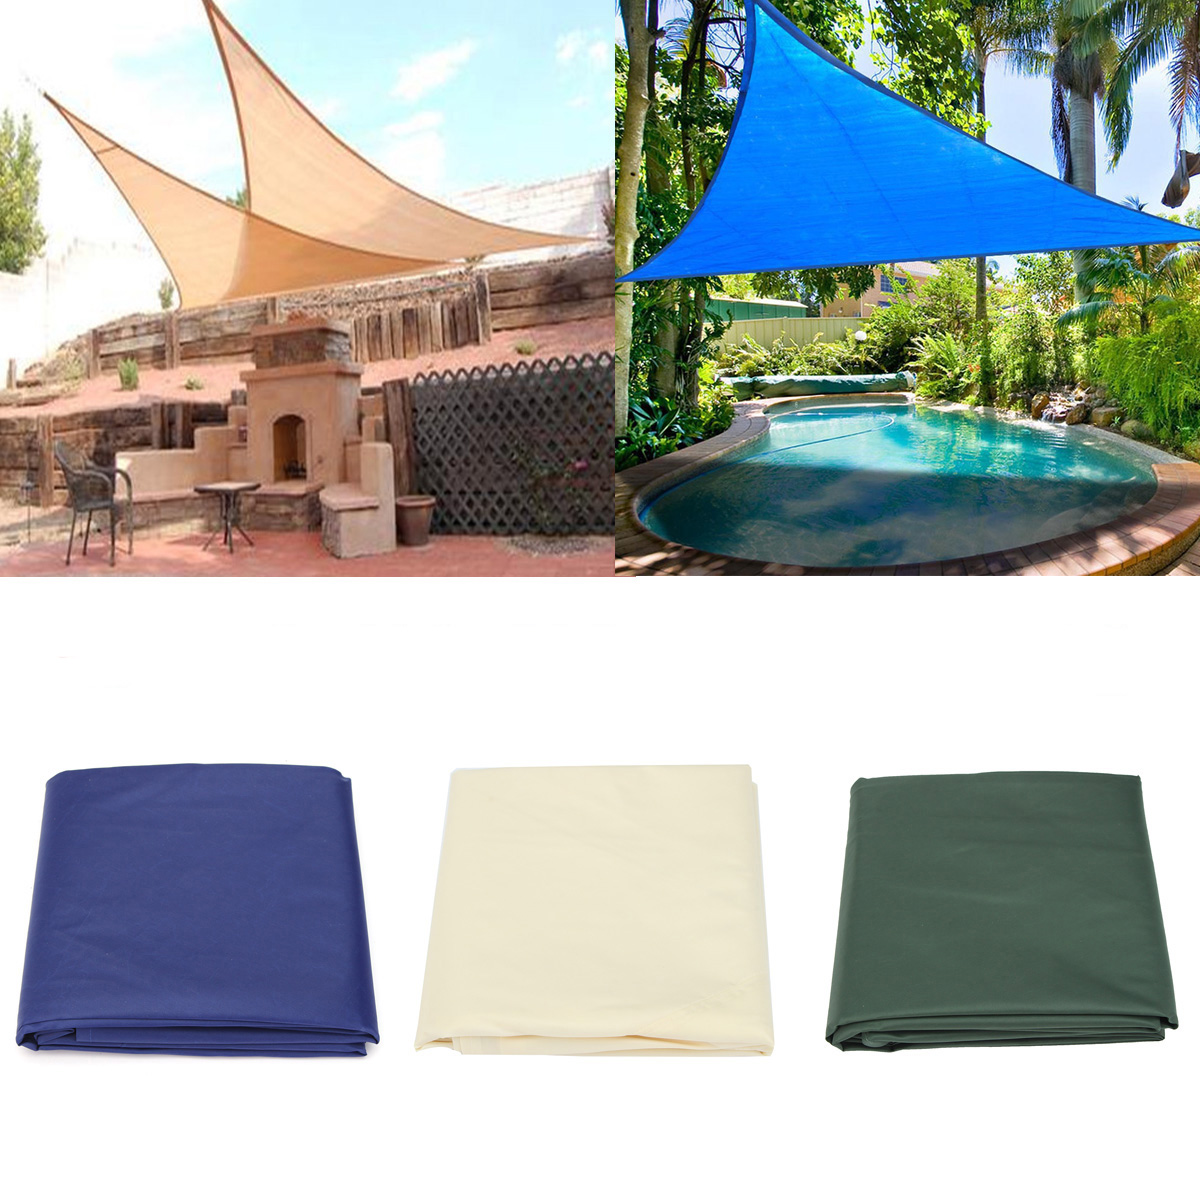 tents ipree sun shade sail anti uv outdoor patio lawn triangle tent. Black Bedroom Furniture Sets. Home Design Ideas